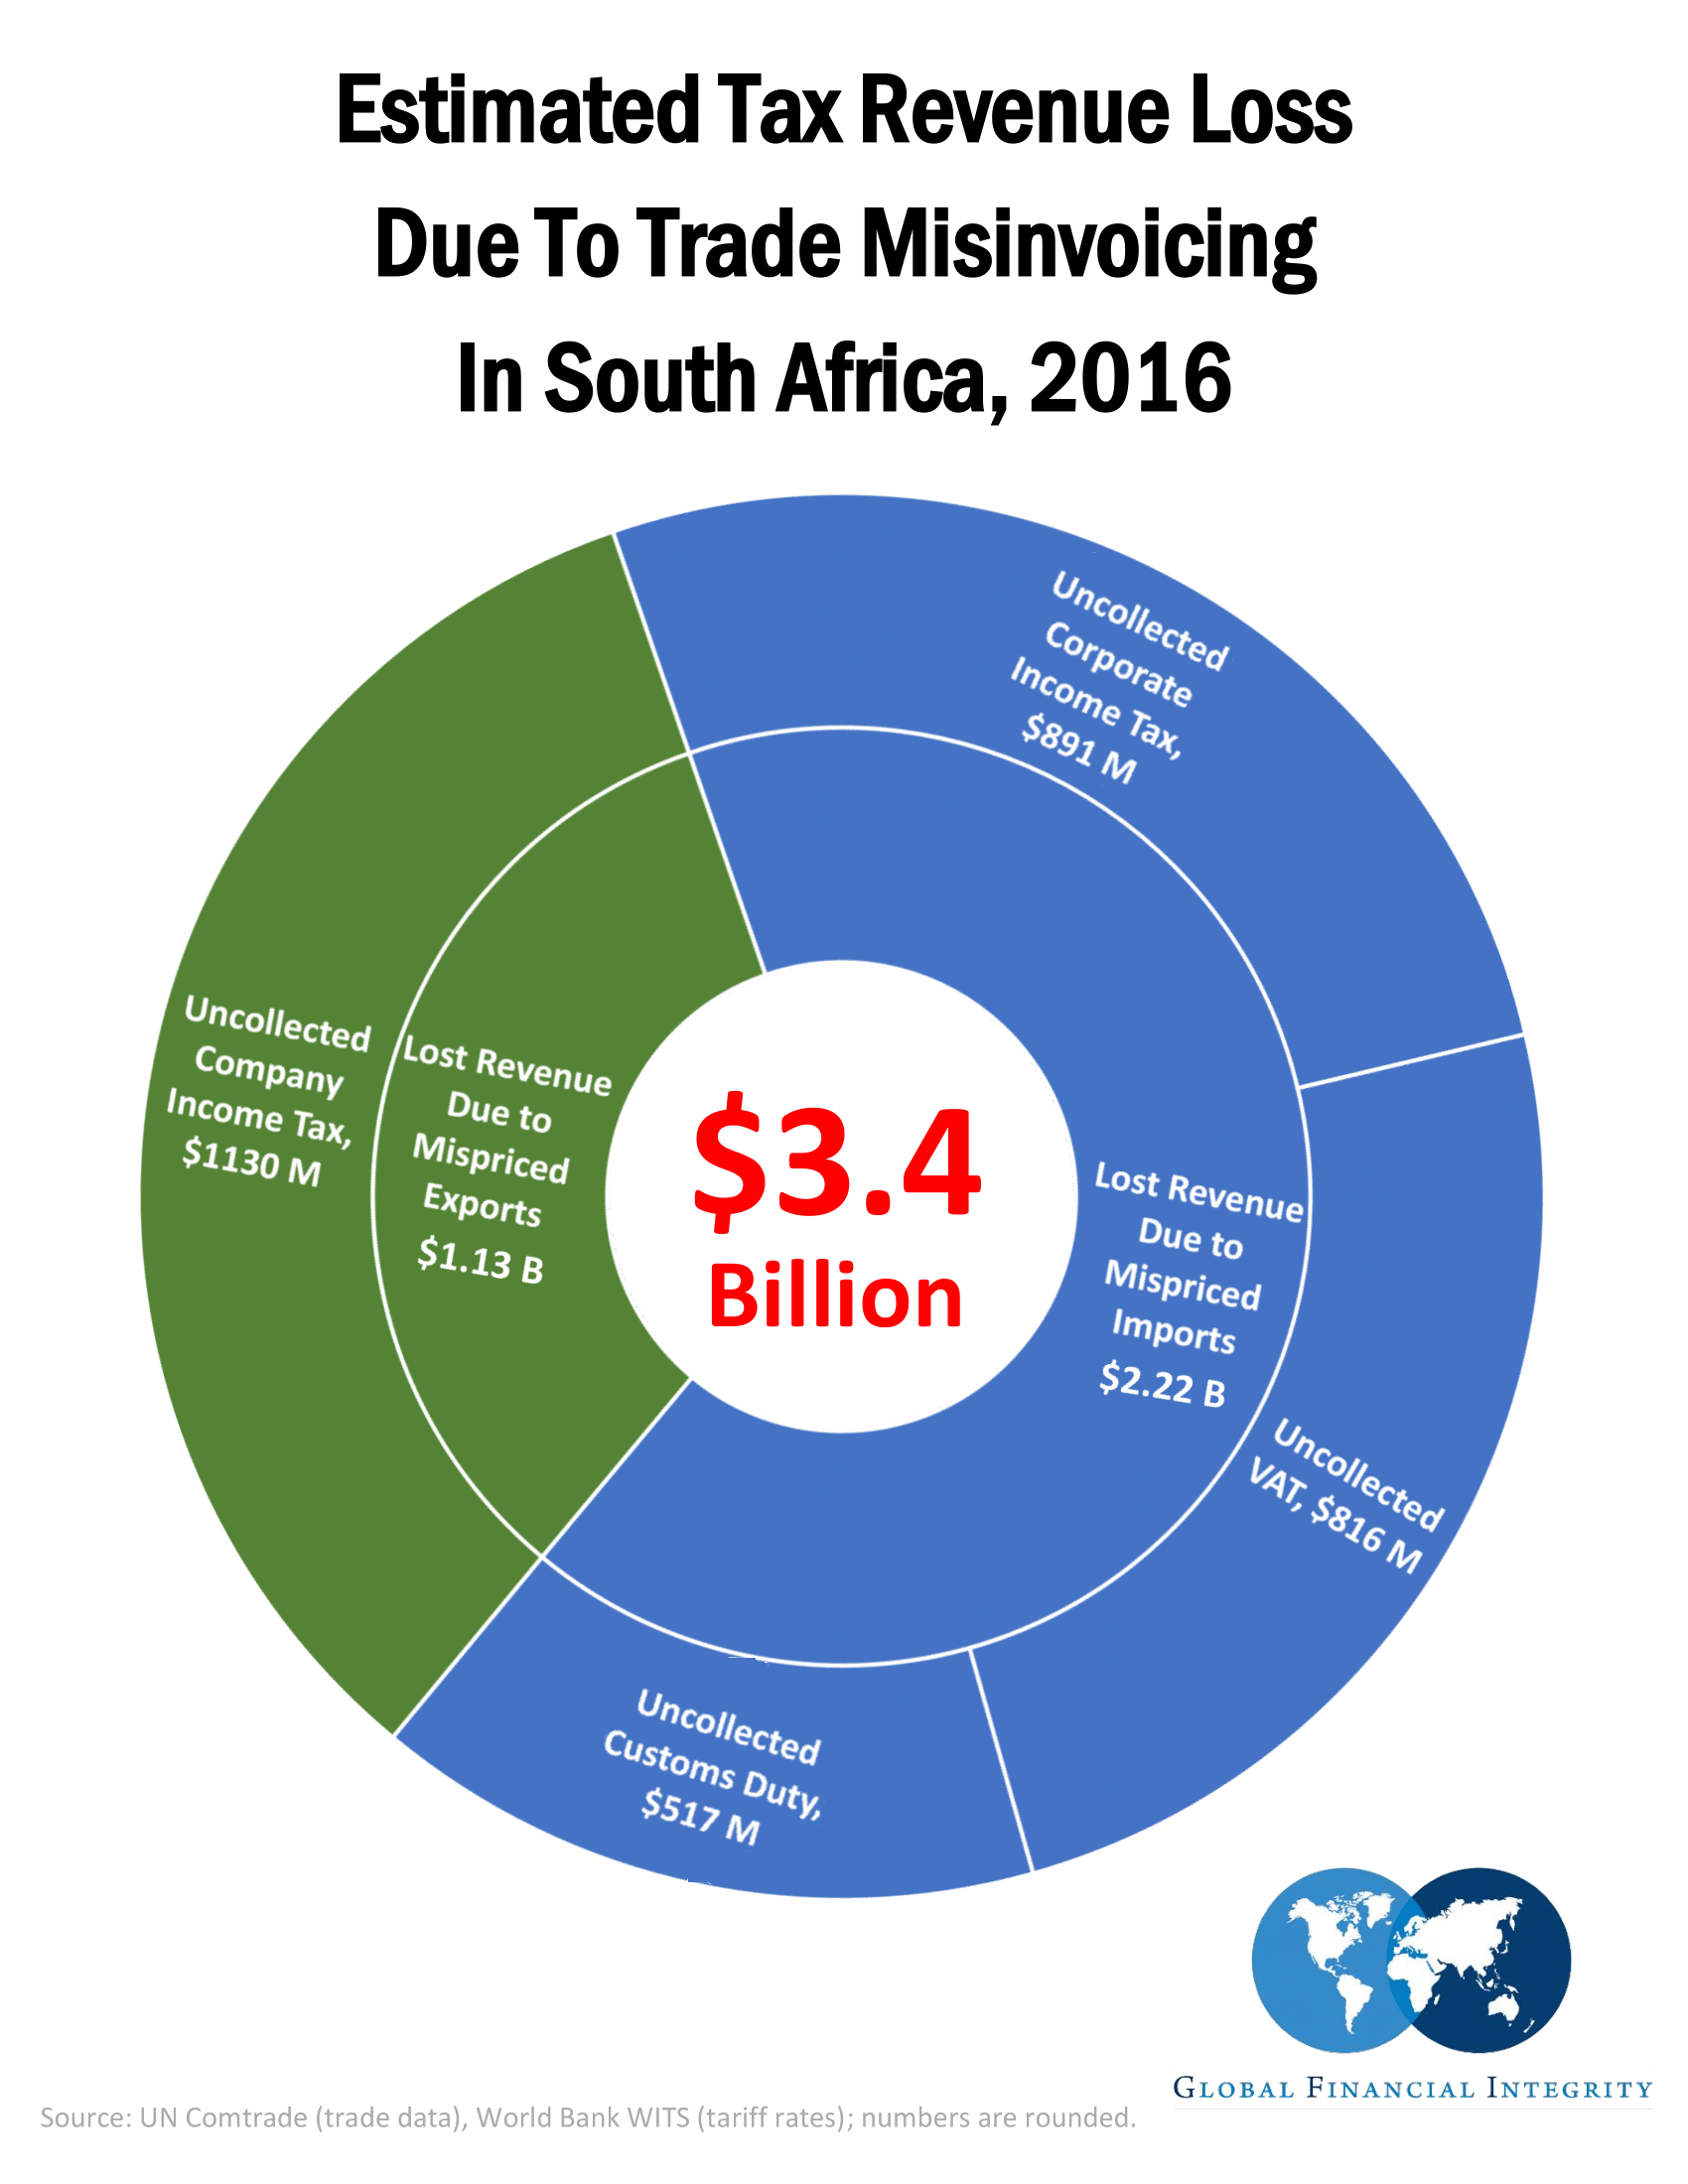 South Africa, Revisited: Trade Misinvoicing and Lost Revenue